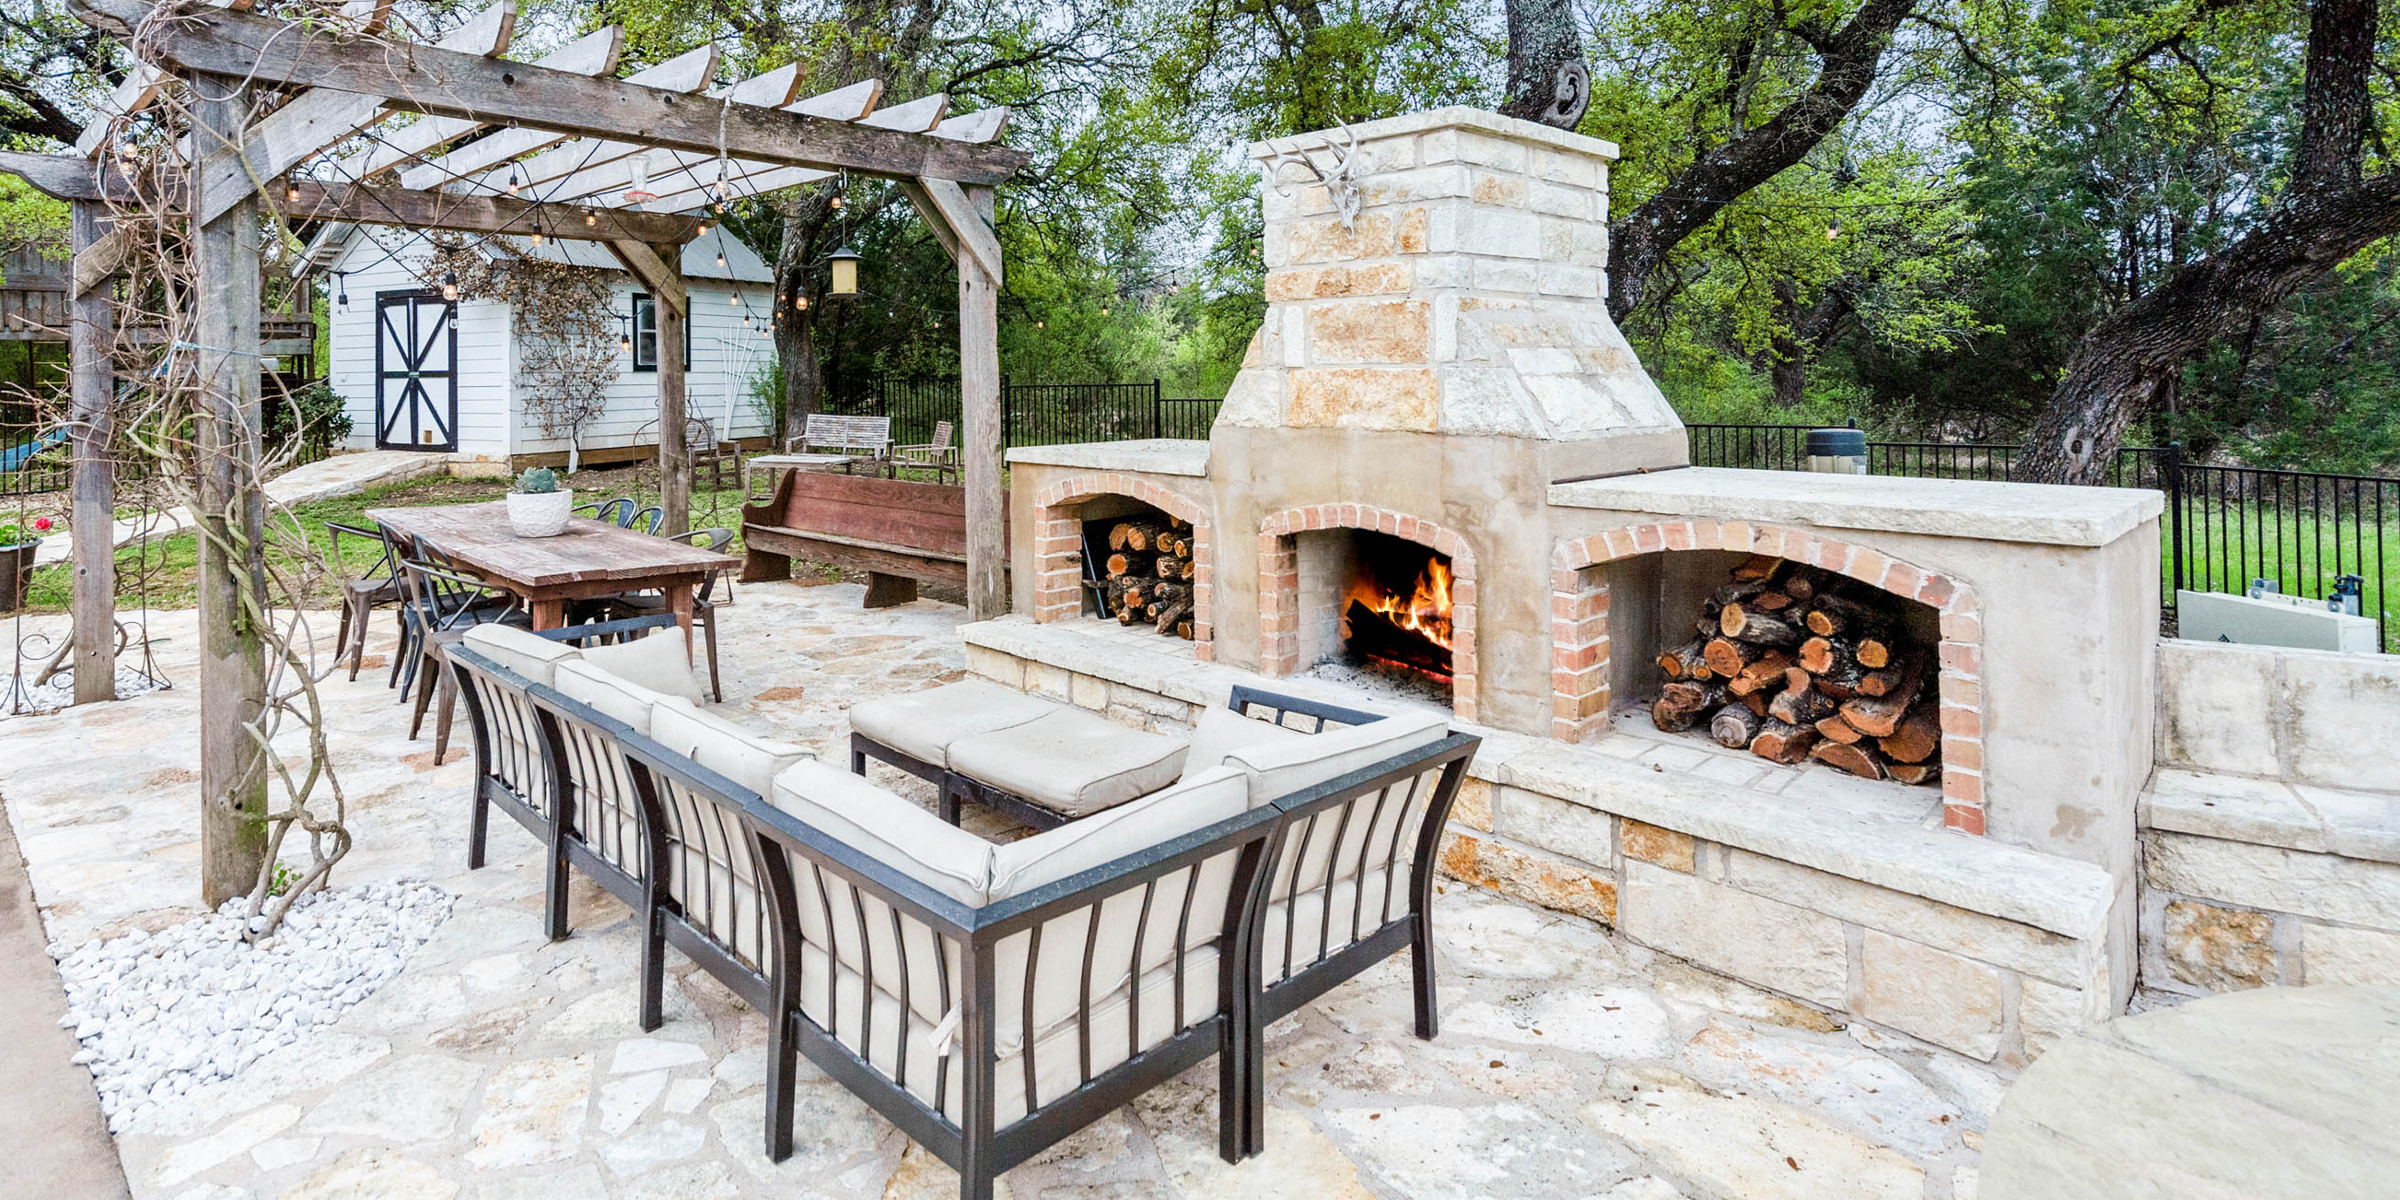 outdoor couch and fire pit